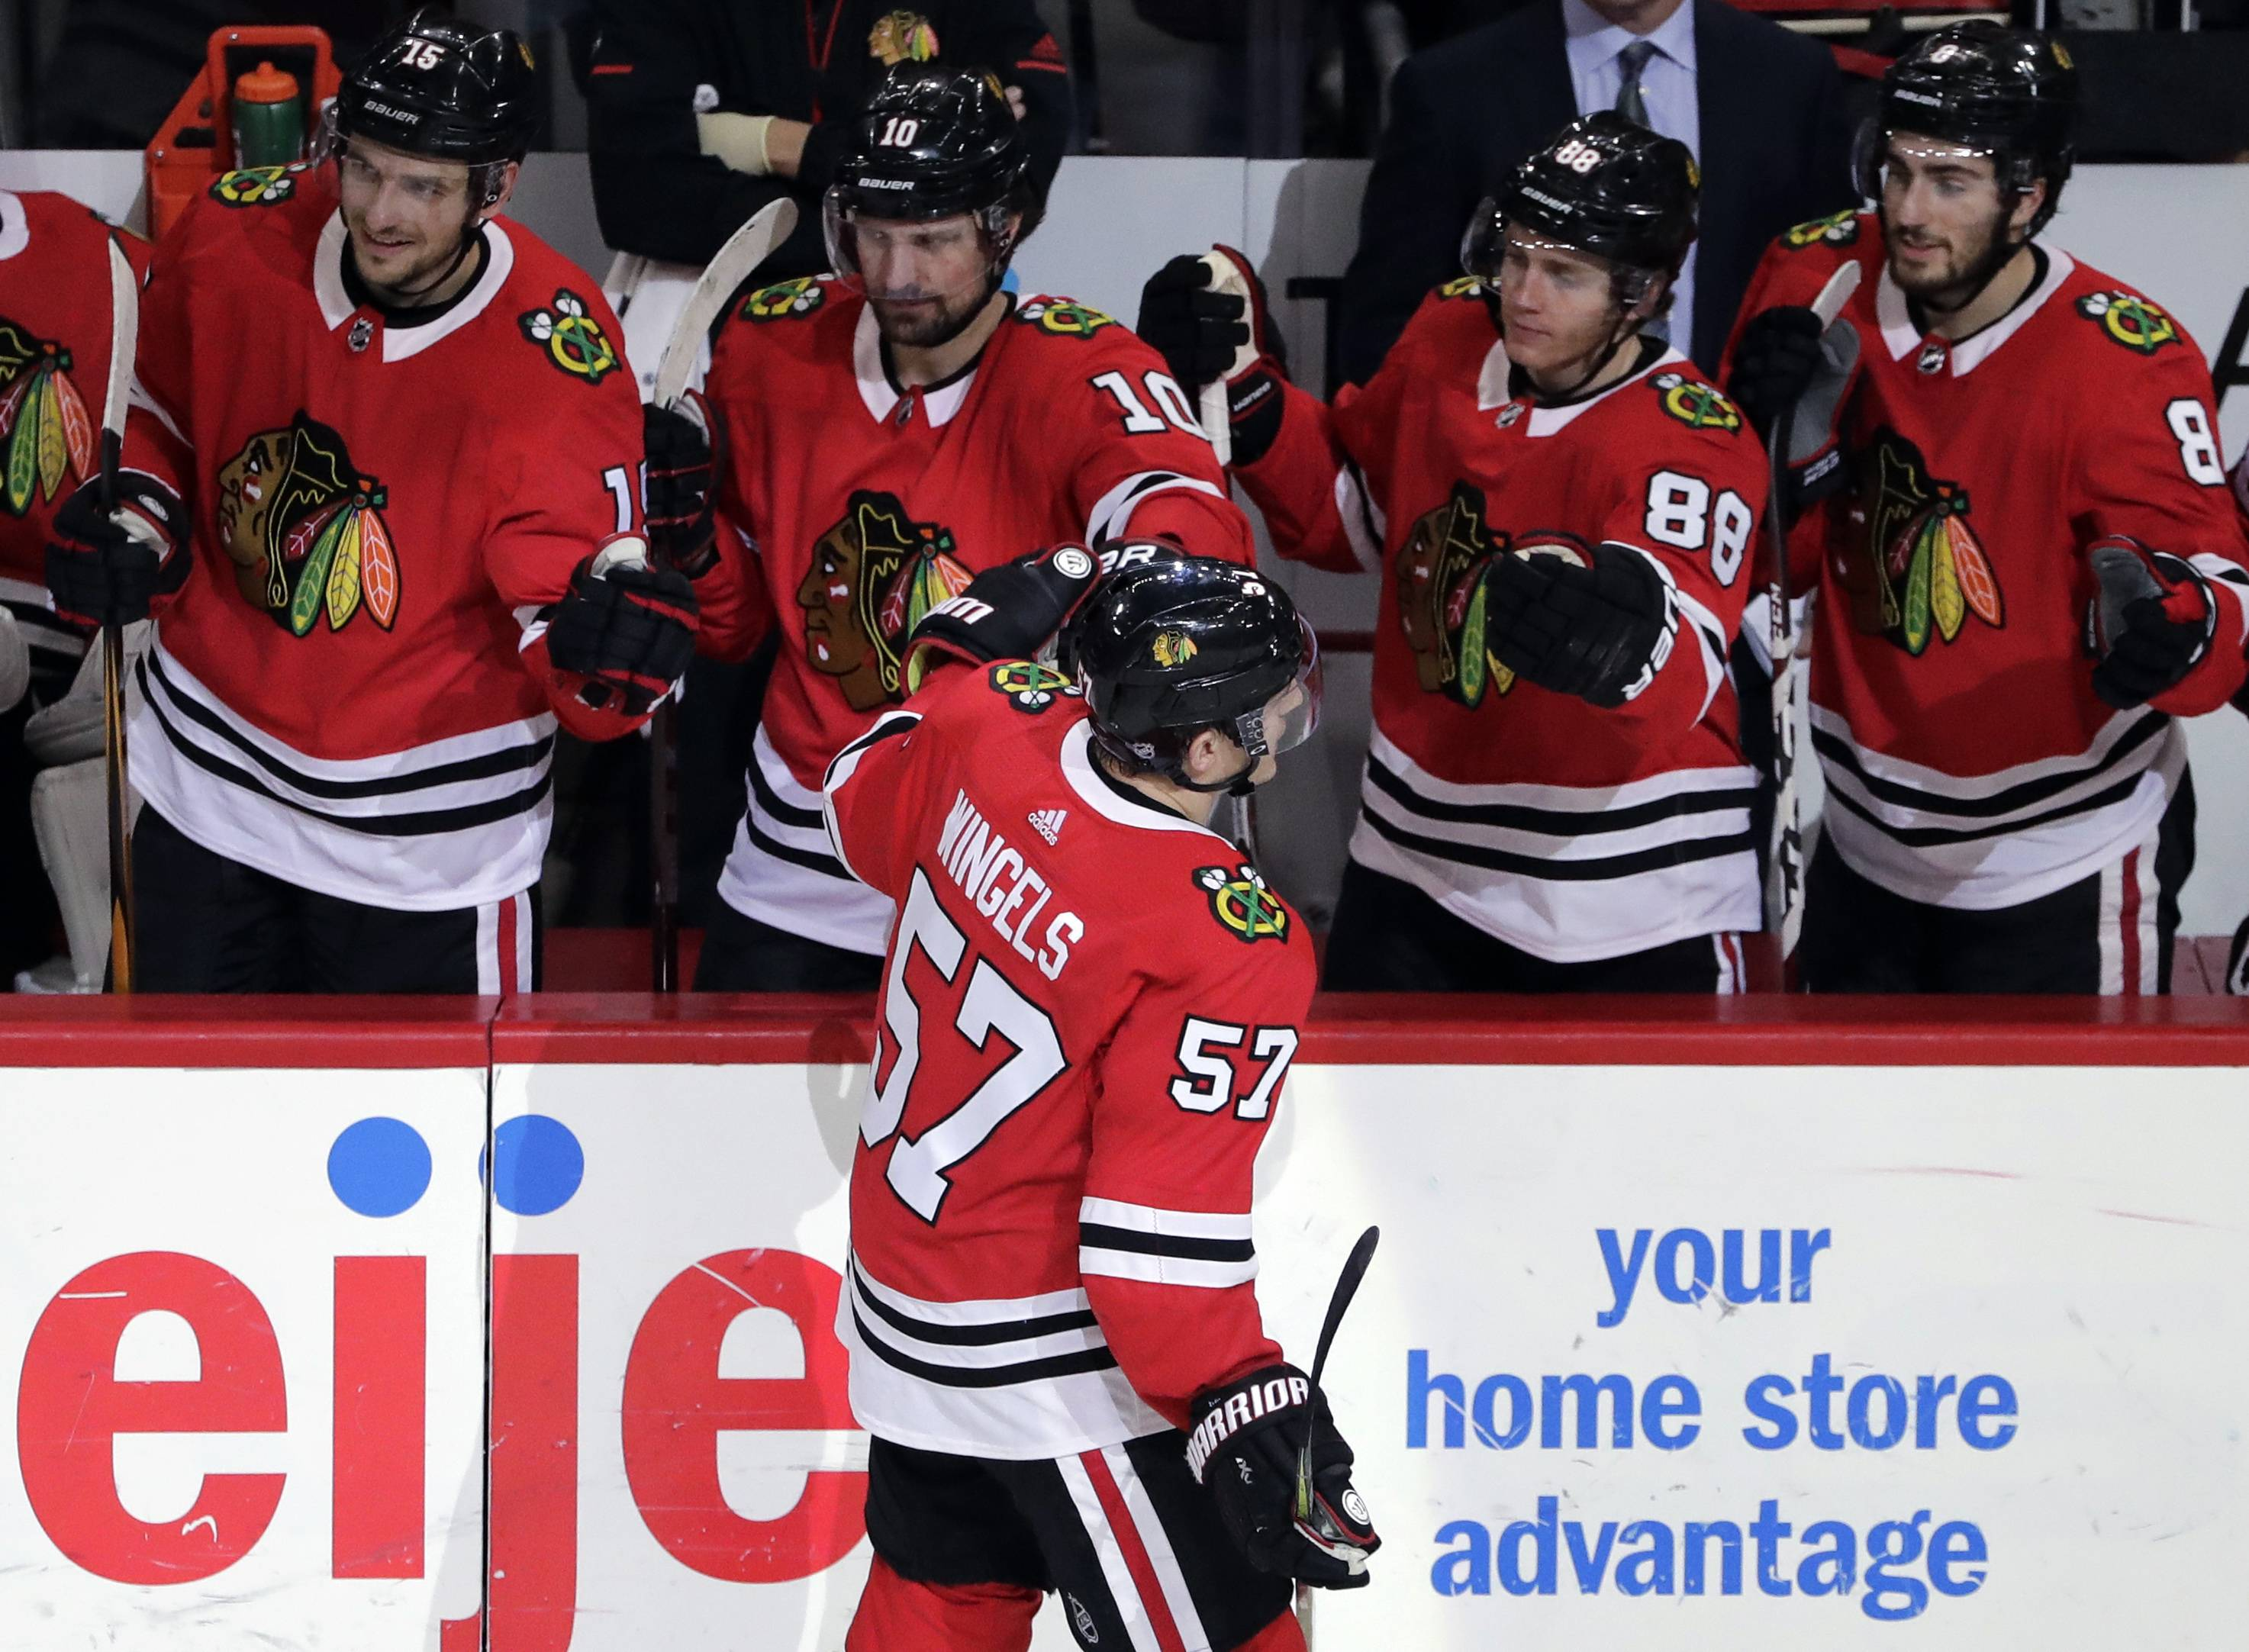 Chicago Blackhawks right wing Tommy Wingels (57) celebrates with teammates after scoring a goal against the Minnesota Wild during the third period of an NHL hockey game, Sunday, Dec. 17, 2017, in Chicago. The Blackhawks won 4-1. (AP Photo/Nam Y. Huh)